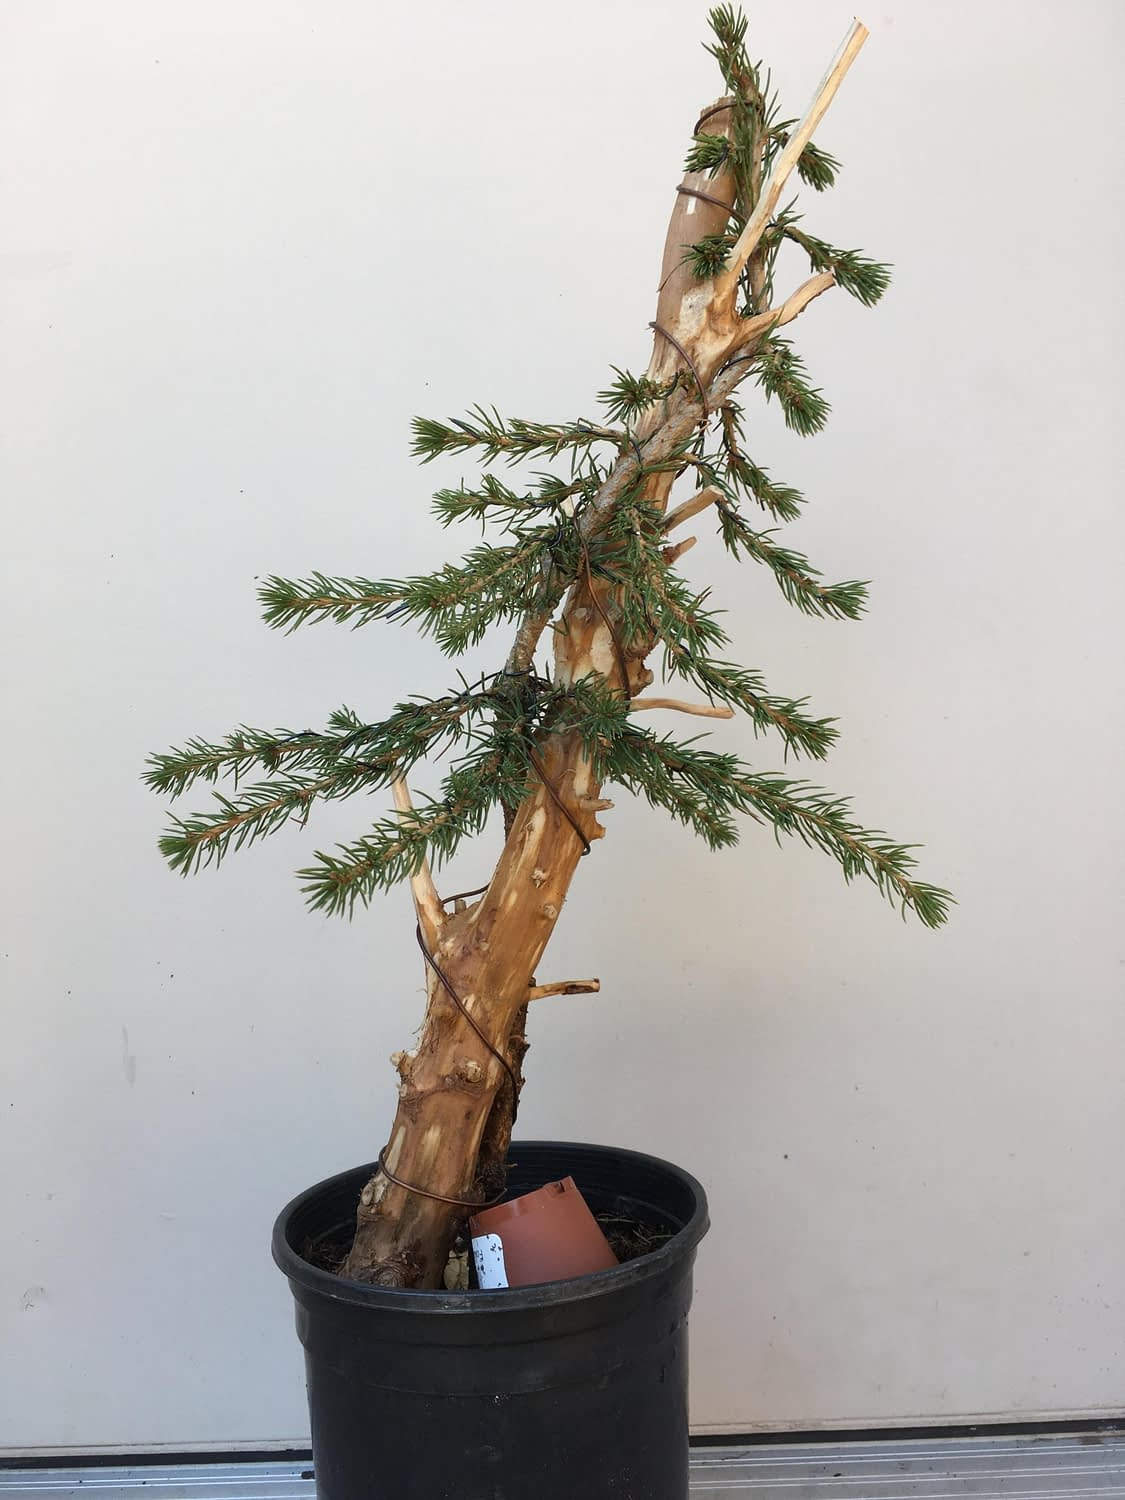 Sometimes bonsai doesn't need to be perfect